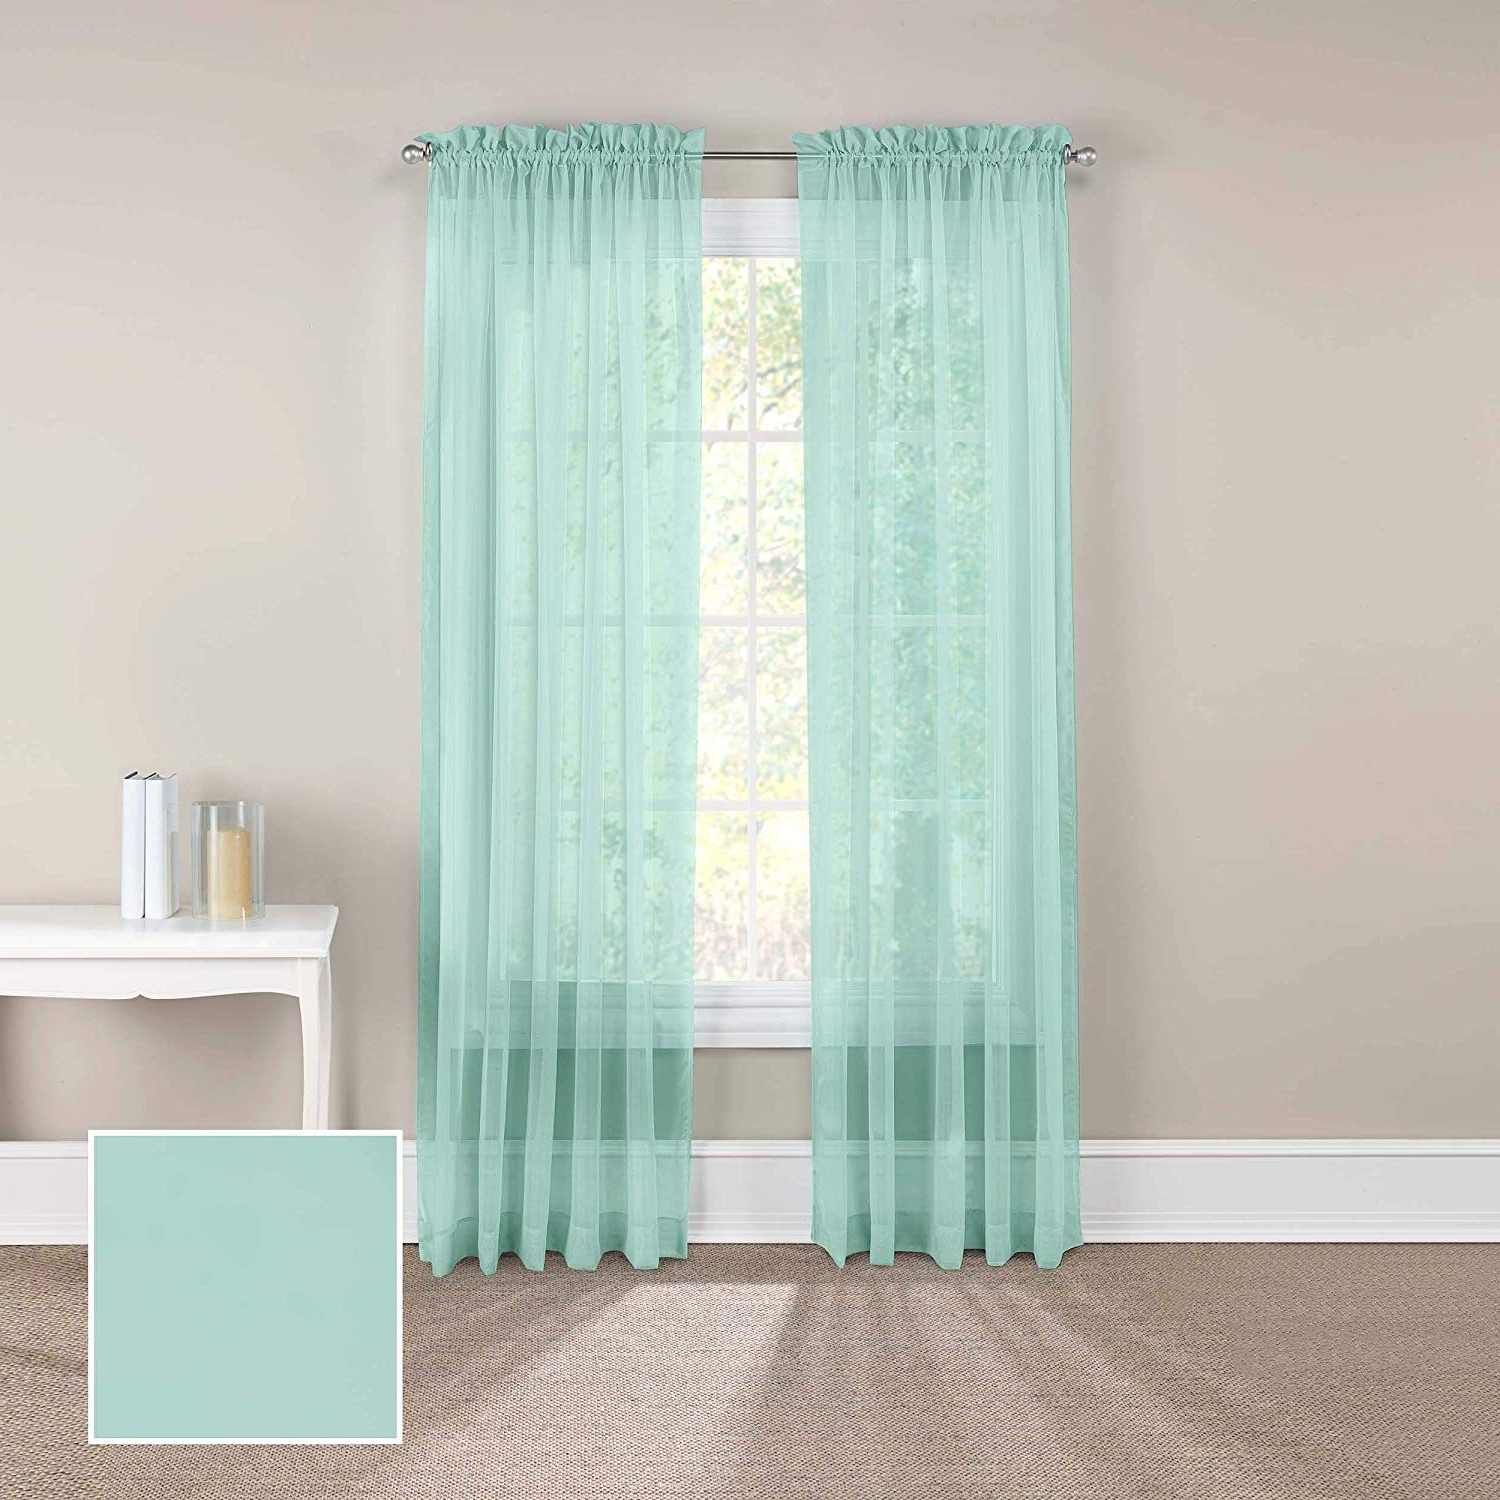 """Latest Pairs To Go Victoria Voile 84"""" X 118"""" Rod Pocket Double Panel Privacy Window Treatment Living Room, Beach Glass, 2 Piece Throughout Pairs To Go Victoria Voile Curtain Panel Pairs (View 7 of 20)"""